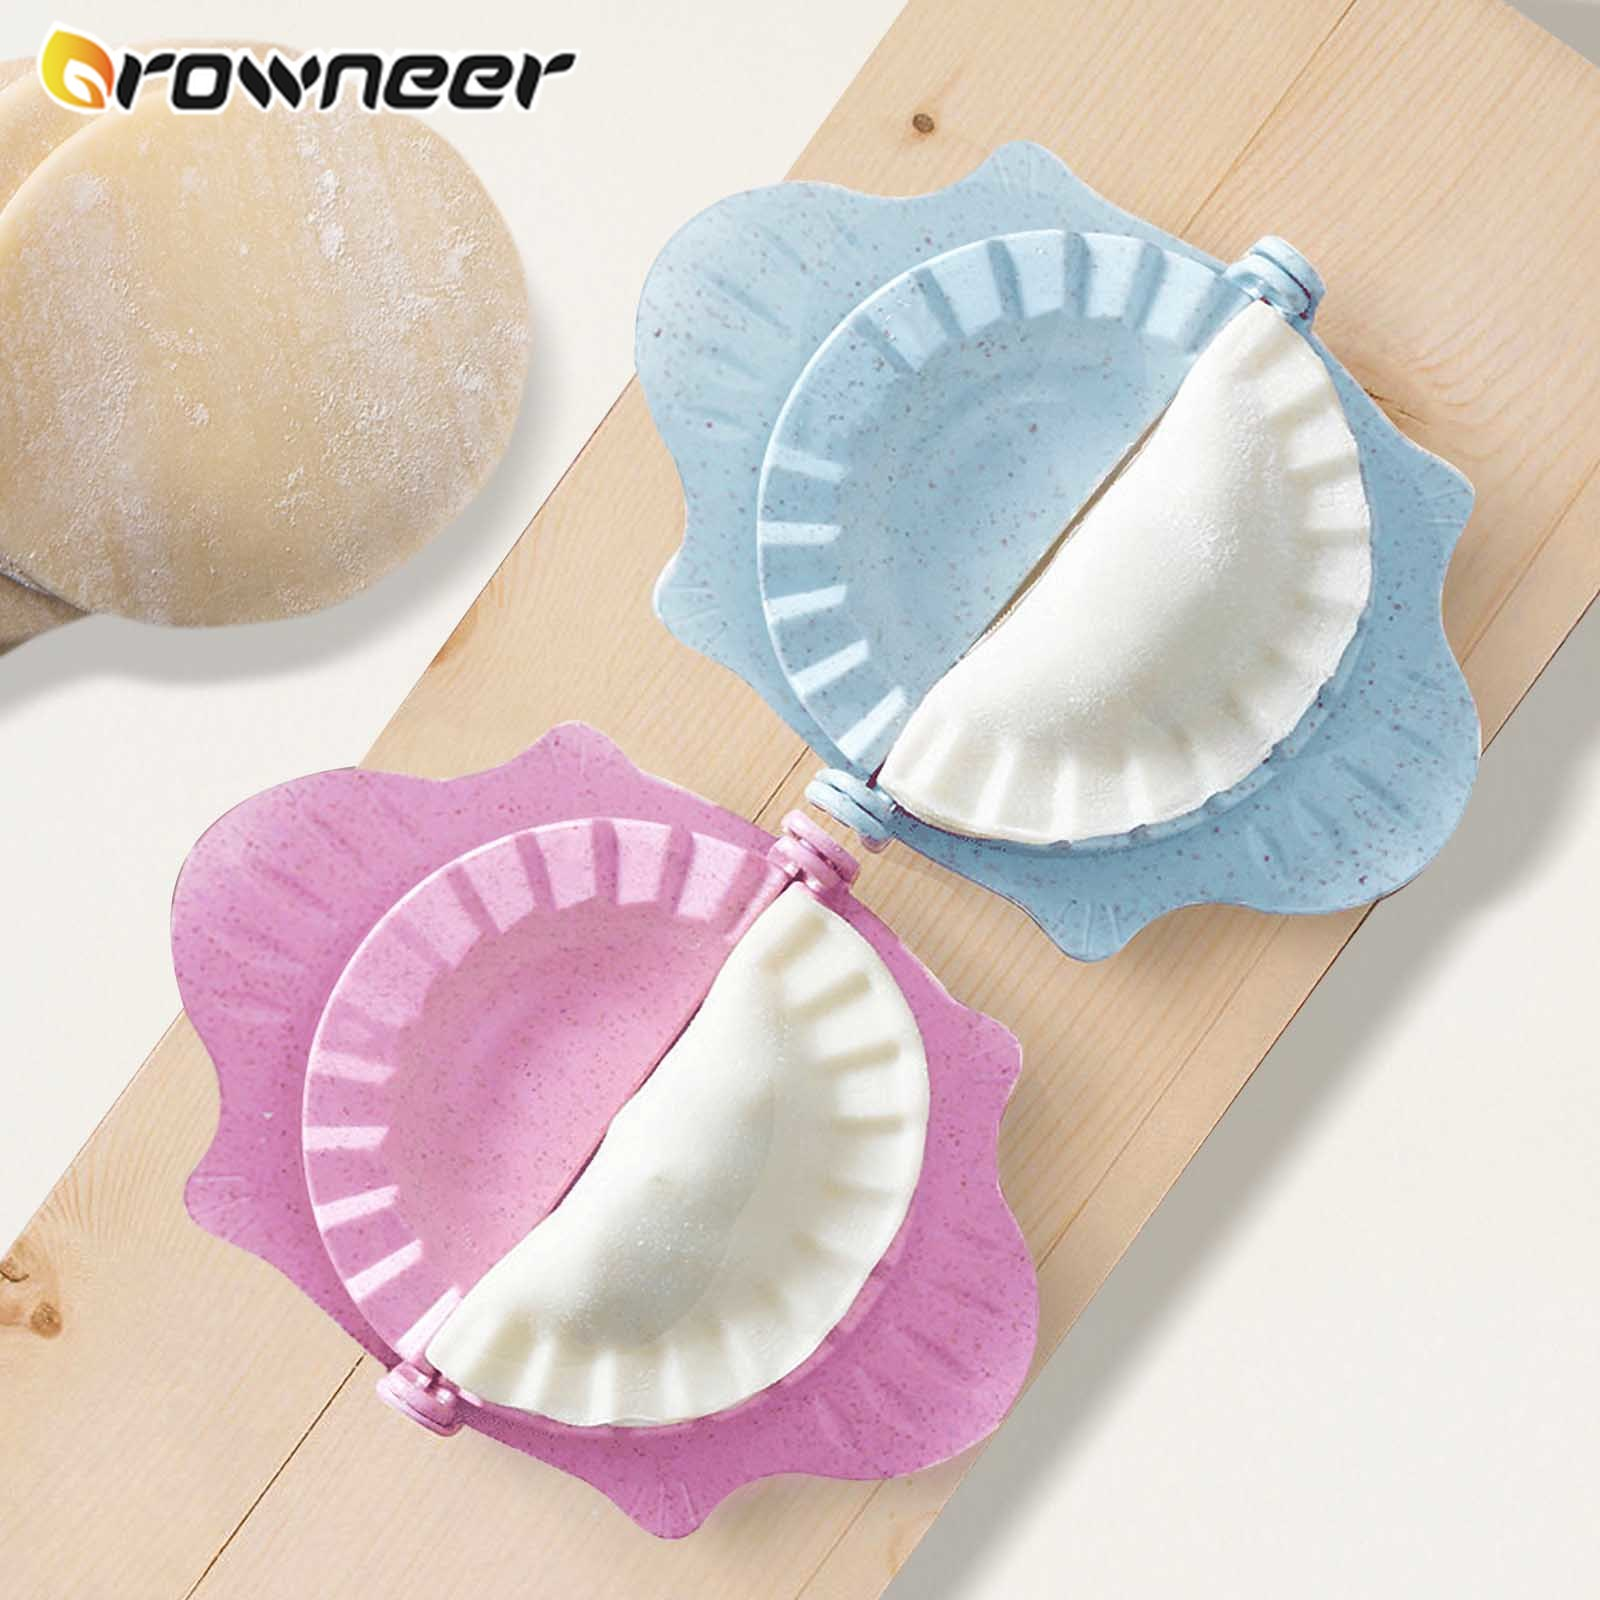 Dumpling Making helper Wheat Straw Jiaozi Mold colorful Non-toxic Pastry Dumplings Molds easy Kitchen Round Face Peel Gadgets